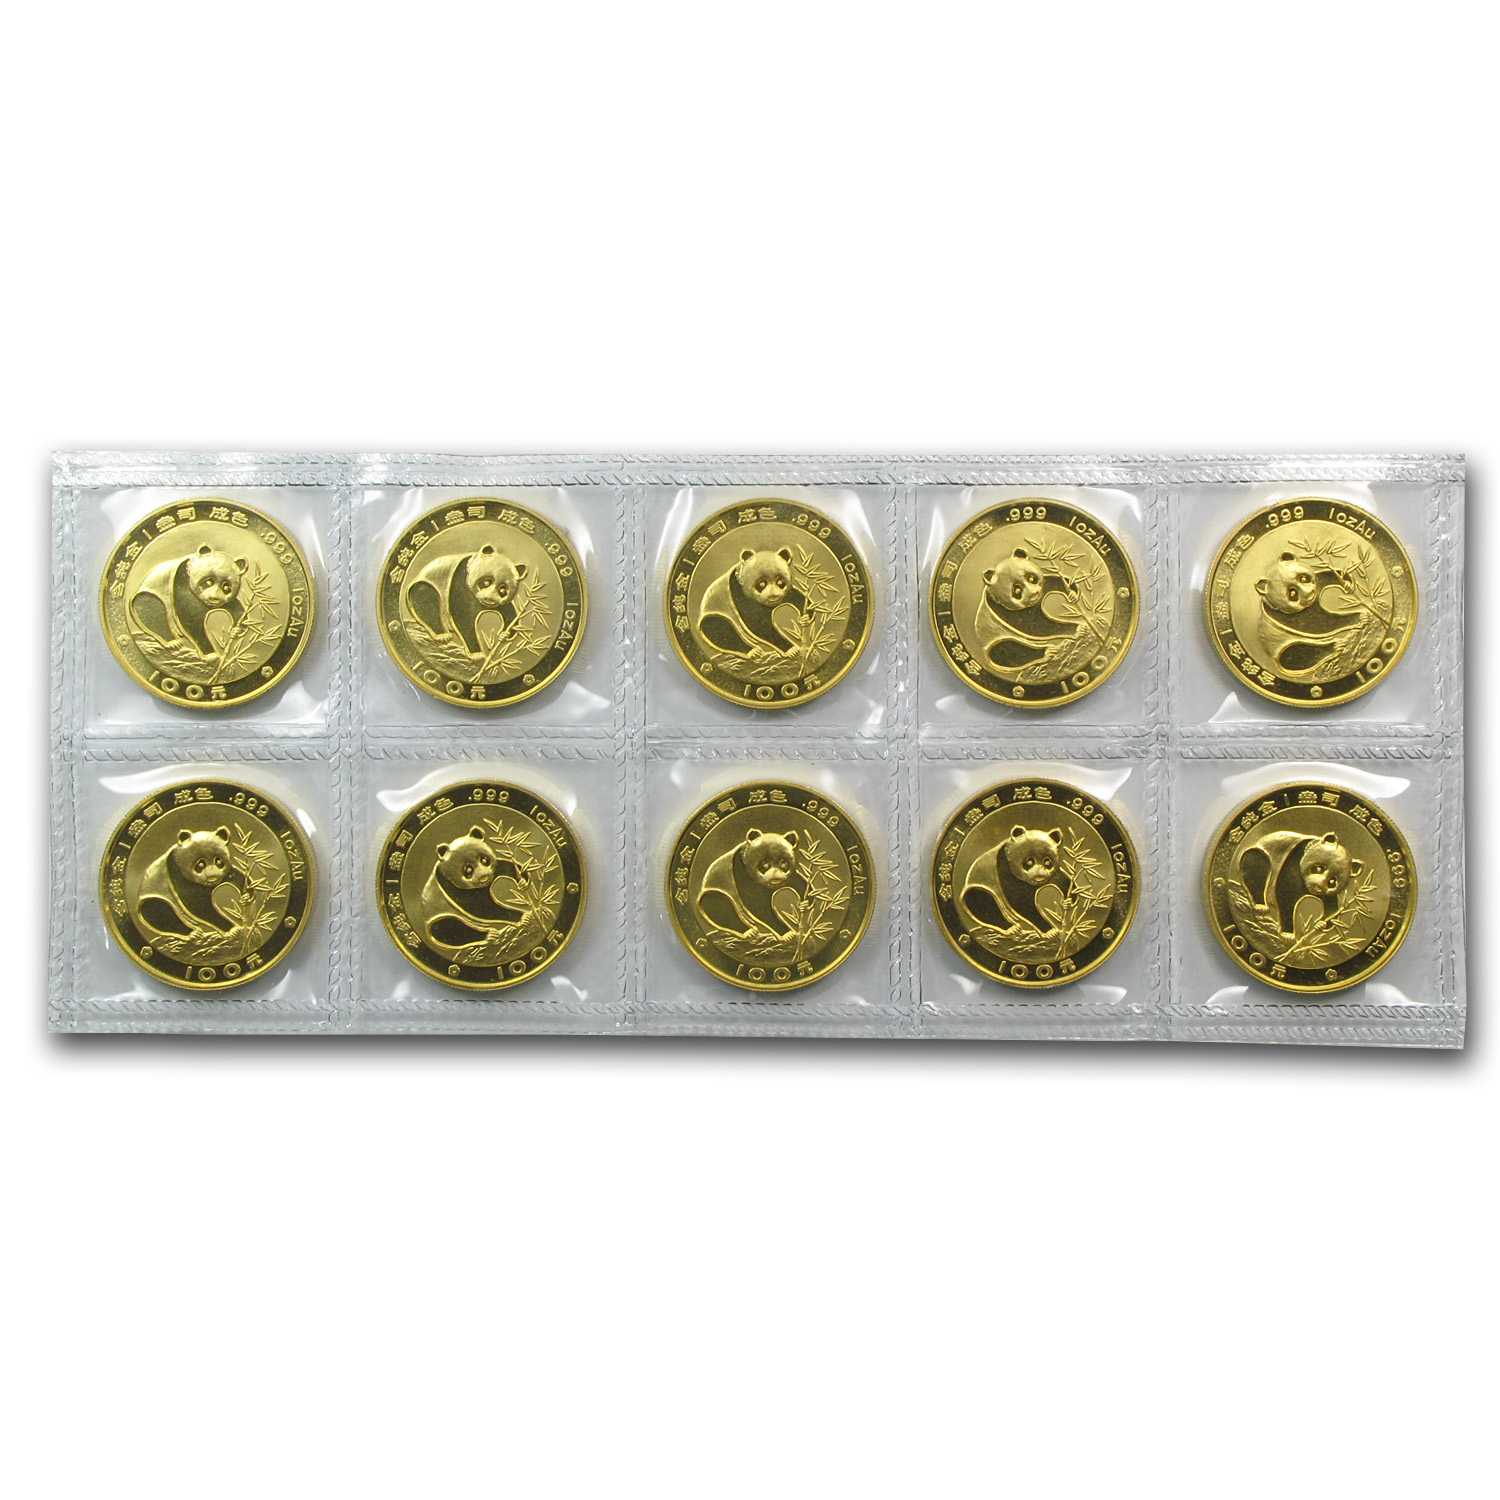 1988 China 1 oz Gold Panda BU (Sealed Sheet of 10)